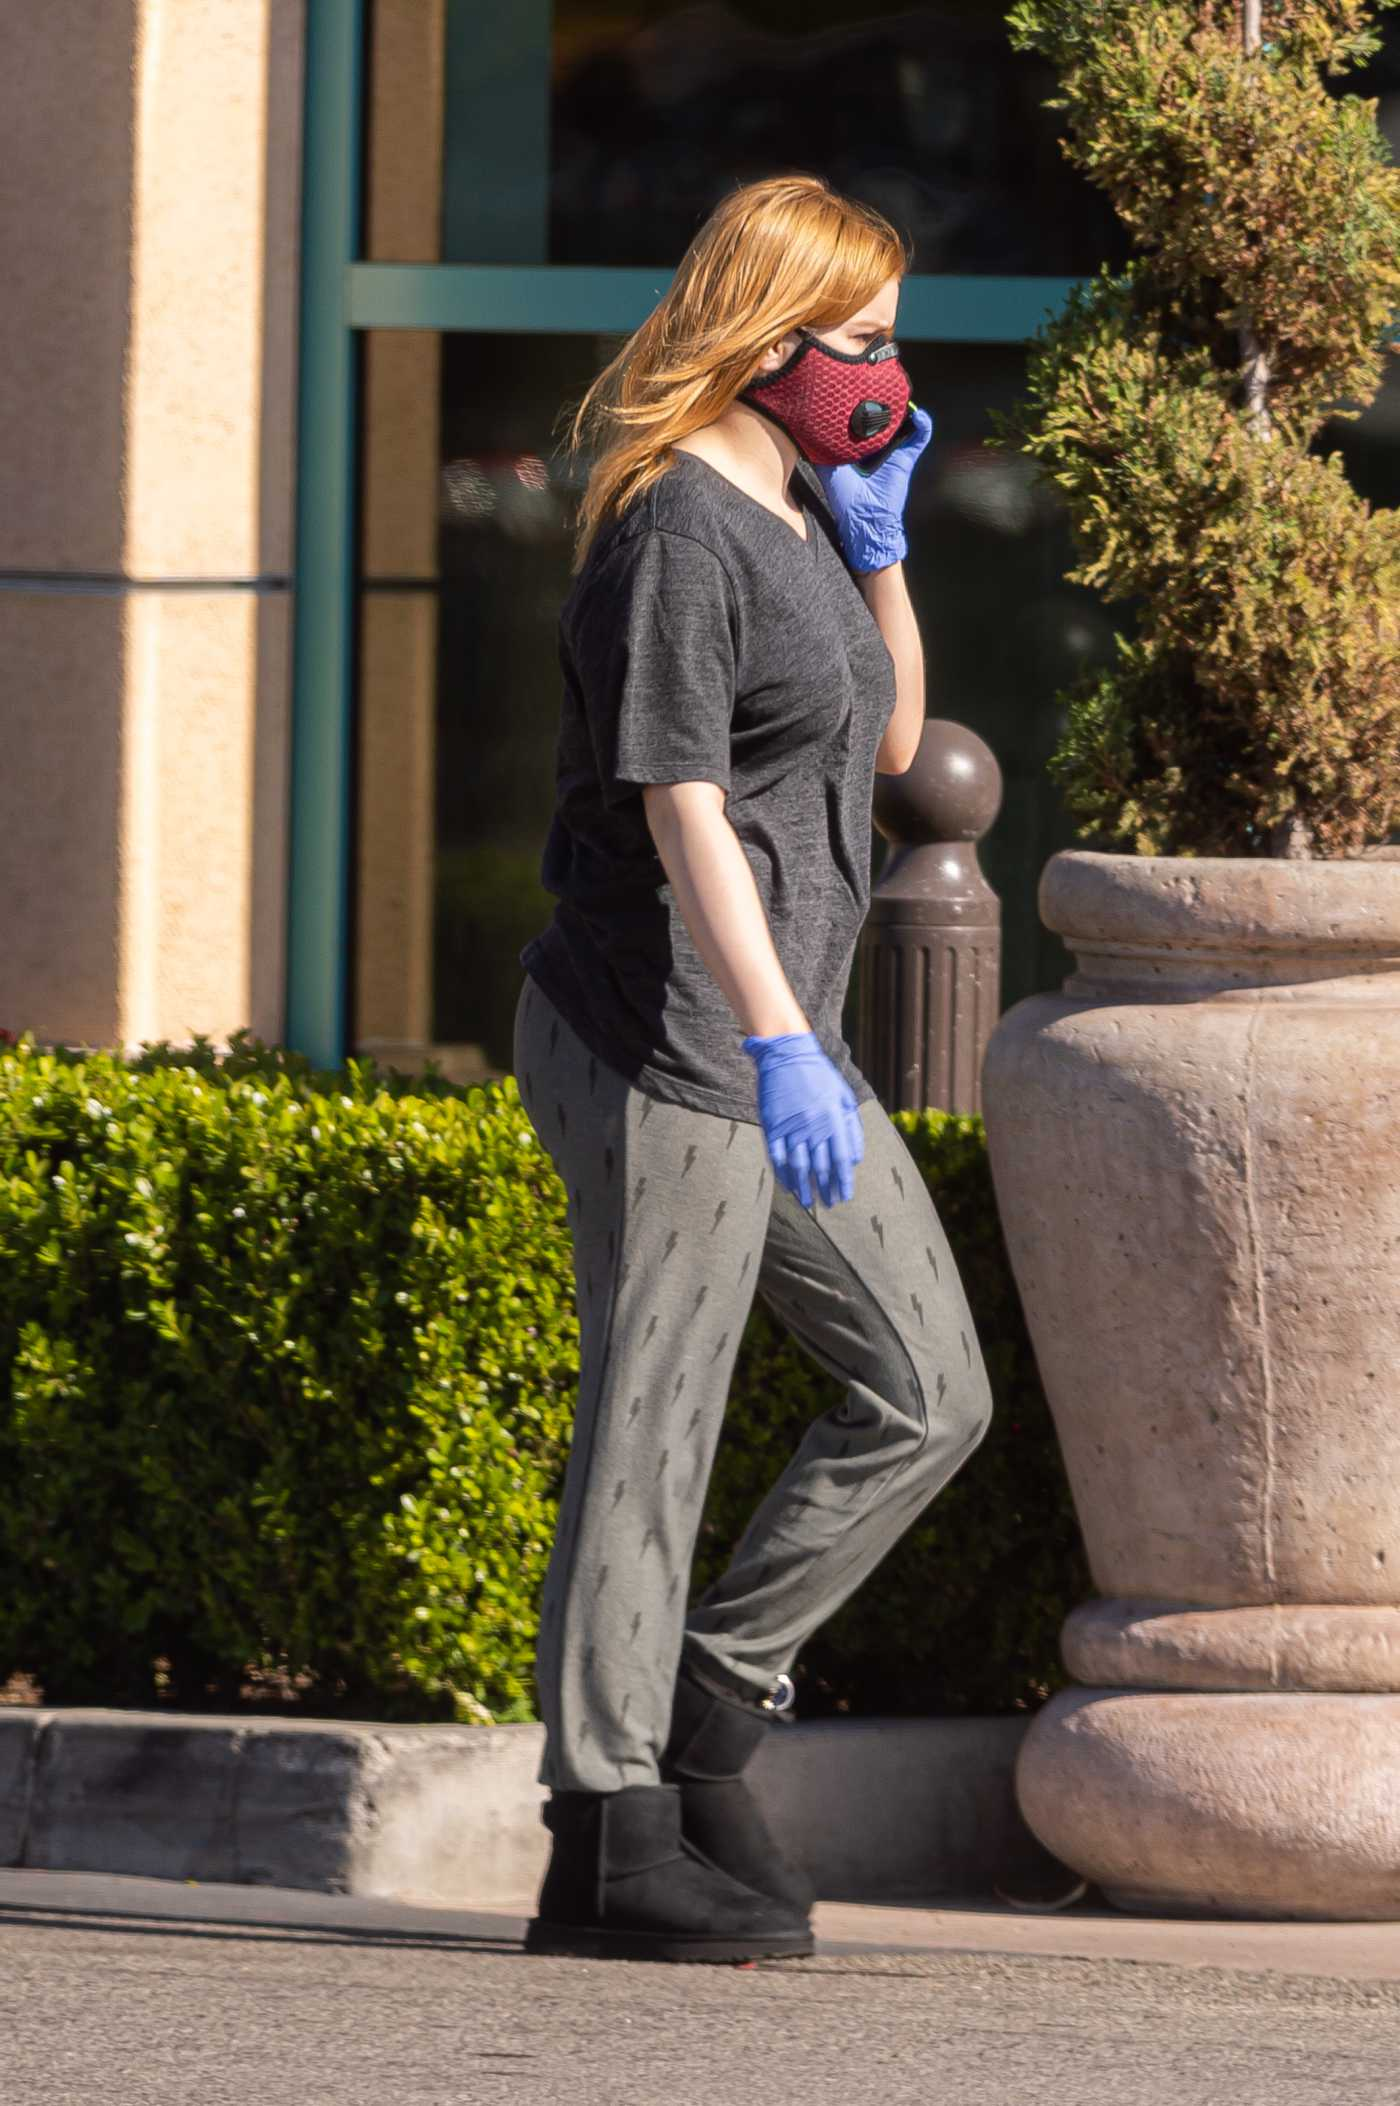 Ariel Winter in a Red Face Mask Goes Grocery Shopping During the COVID-19 Lockdown in Los Angeles 04/26/2020